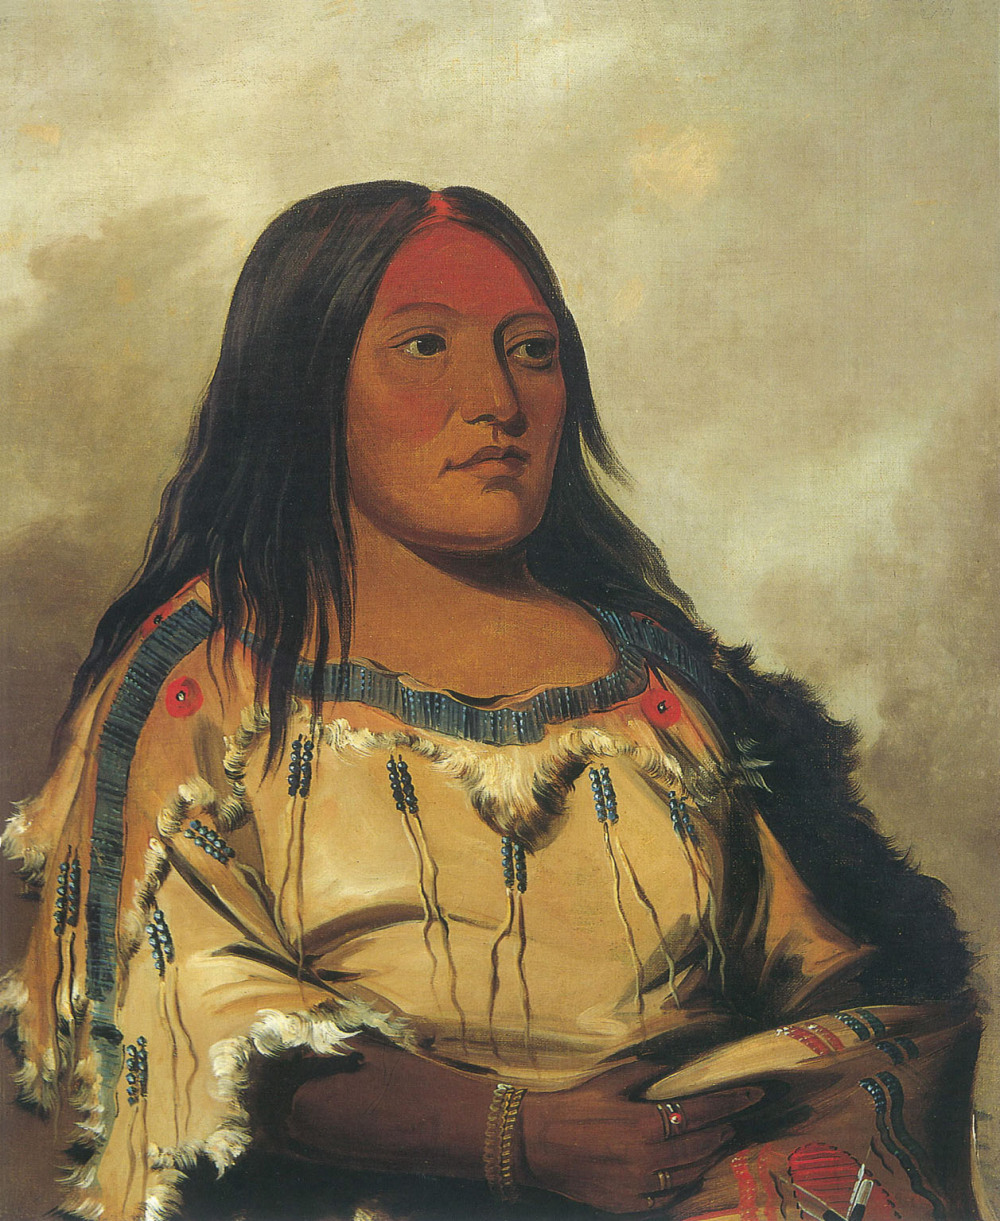 American artist George Catlin traveled west to paint Native Americans. In 1832 he painted Eeh-nís-kim, Crystal Stone, wife of a Blackfoot leader. Via Smithsonian American Art Museum.